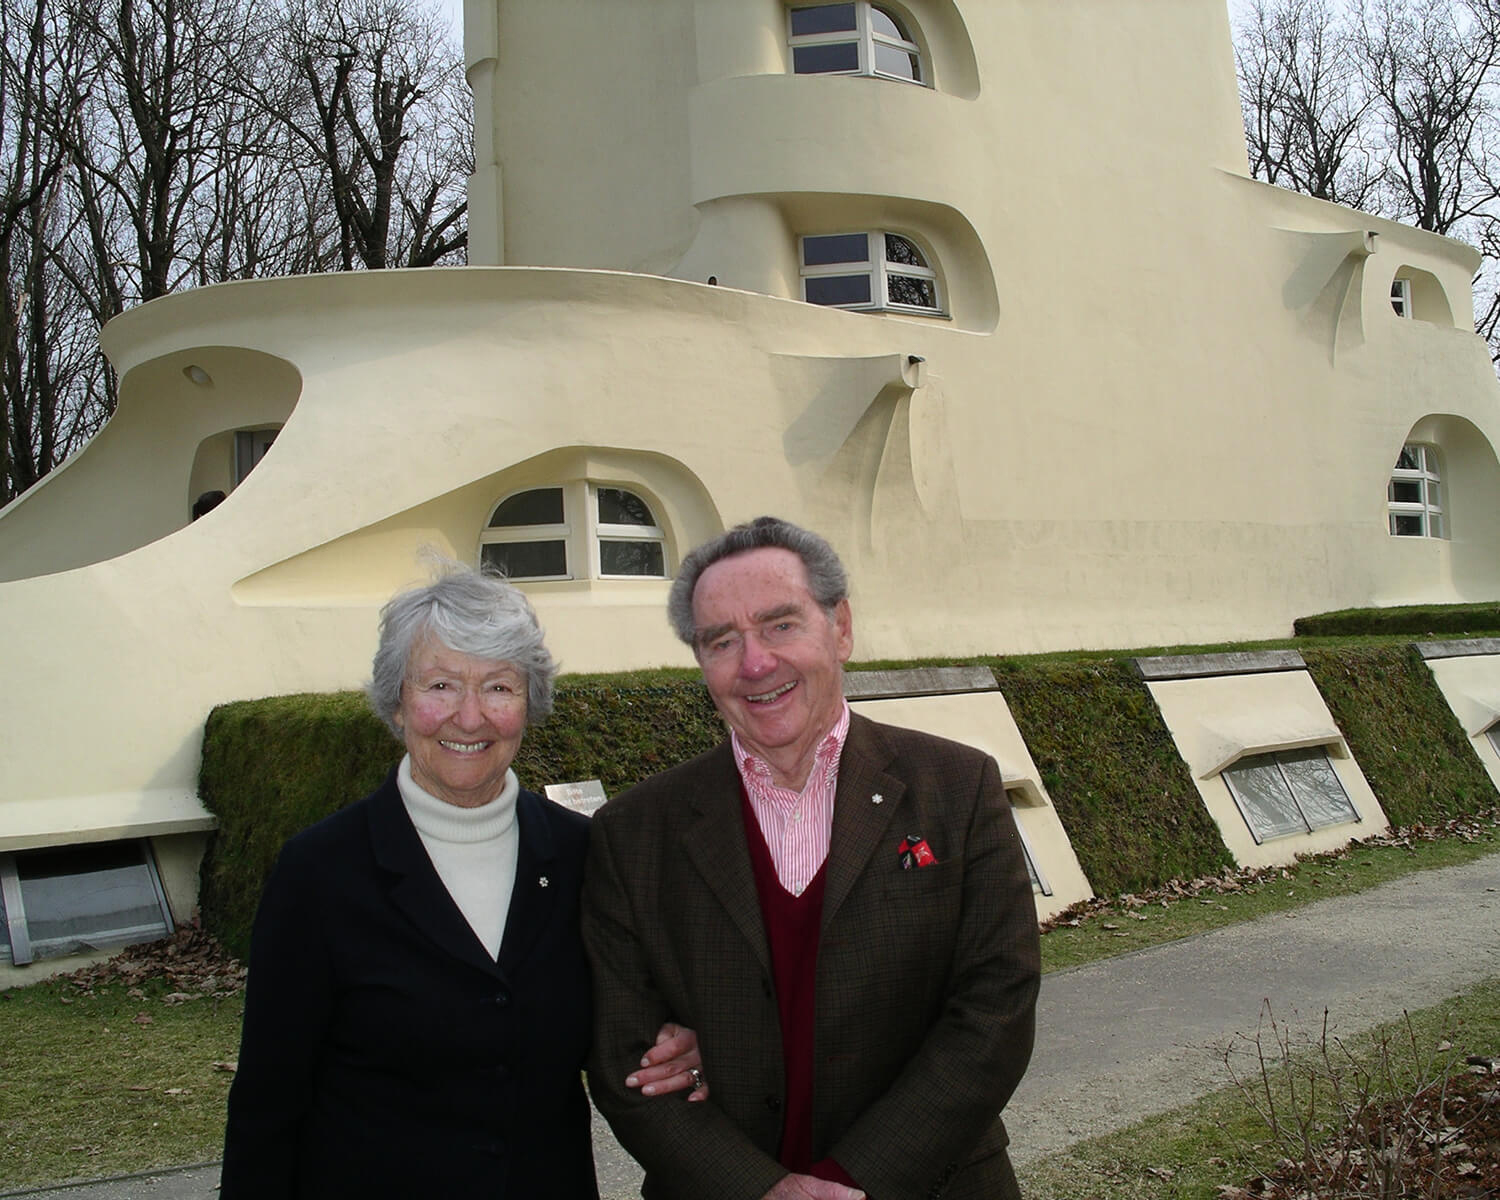 Cornelia and Peter Oberlander outside the Einstein Tower in 2005